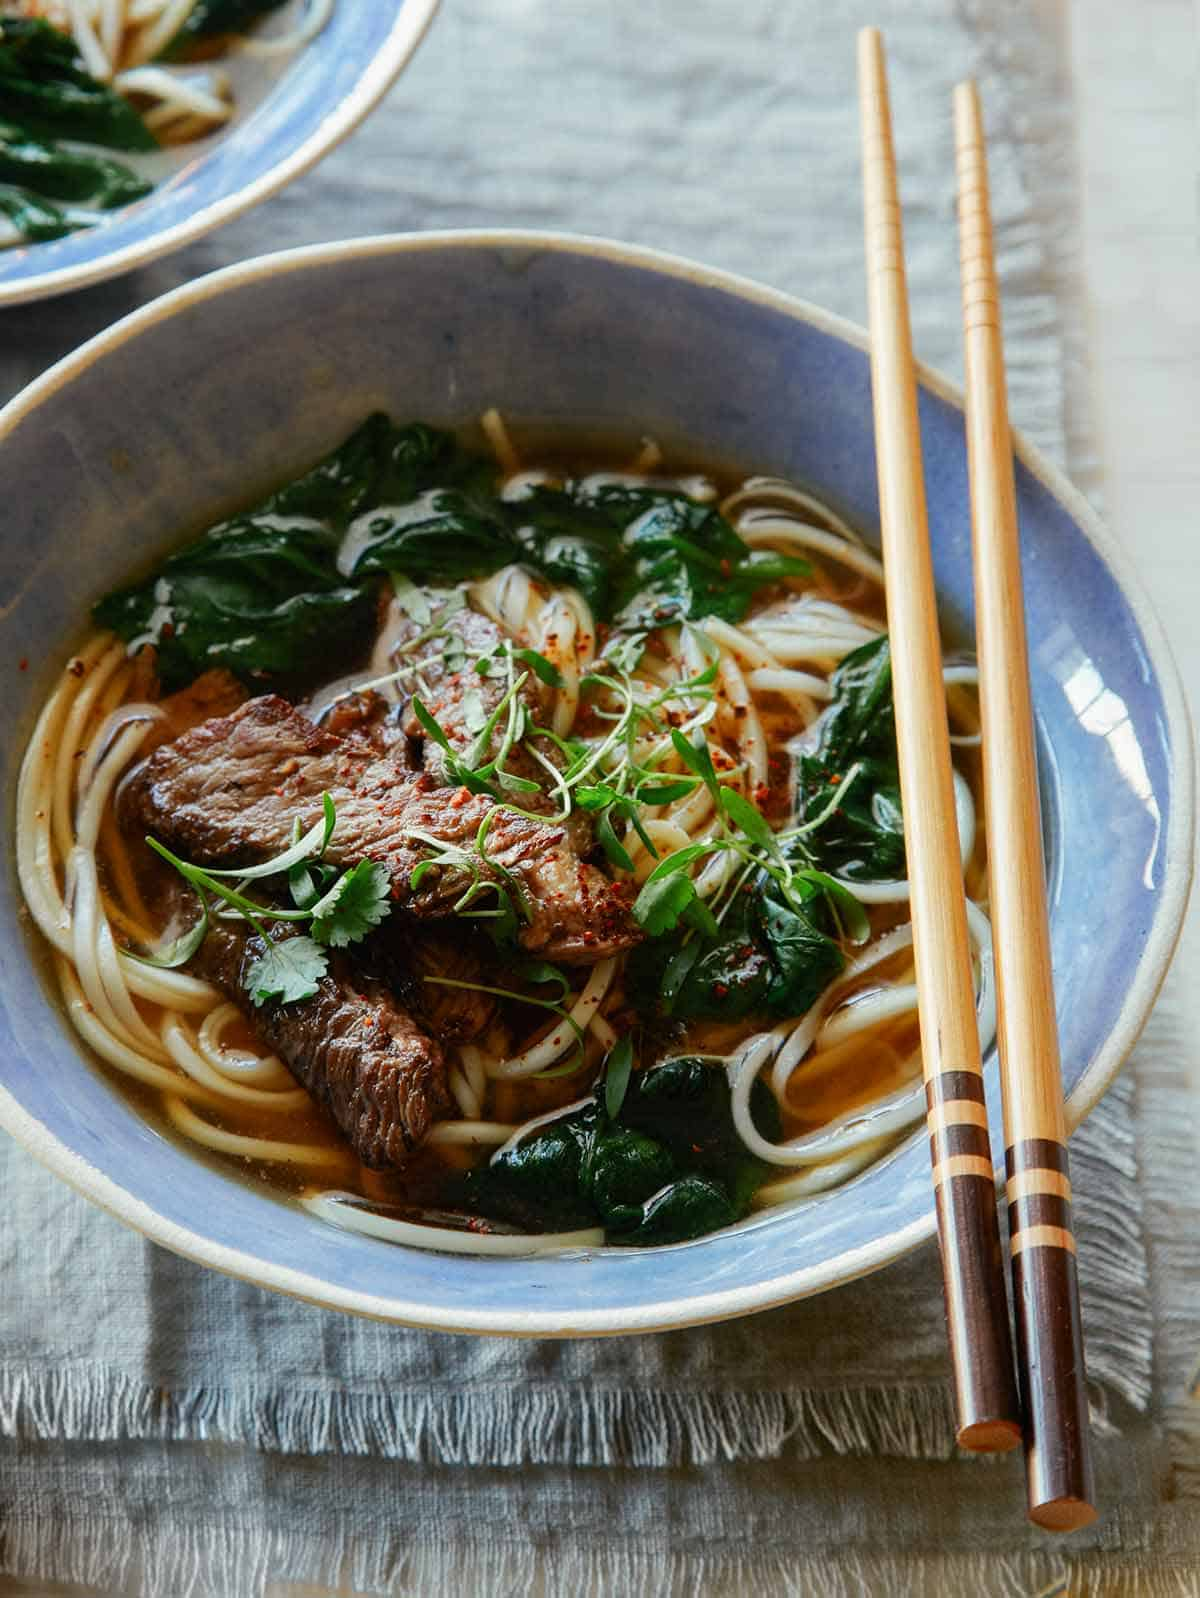 Beef noodle soup in a bowl with chopsticks.